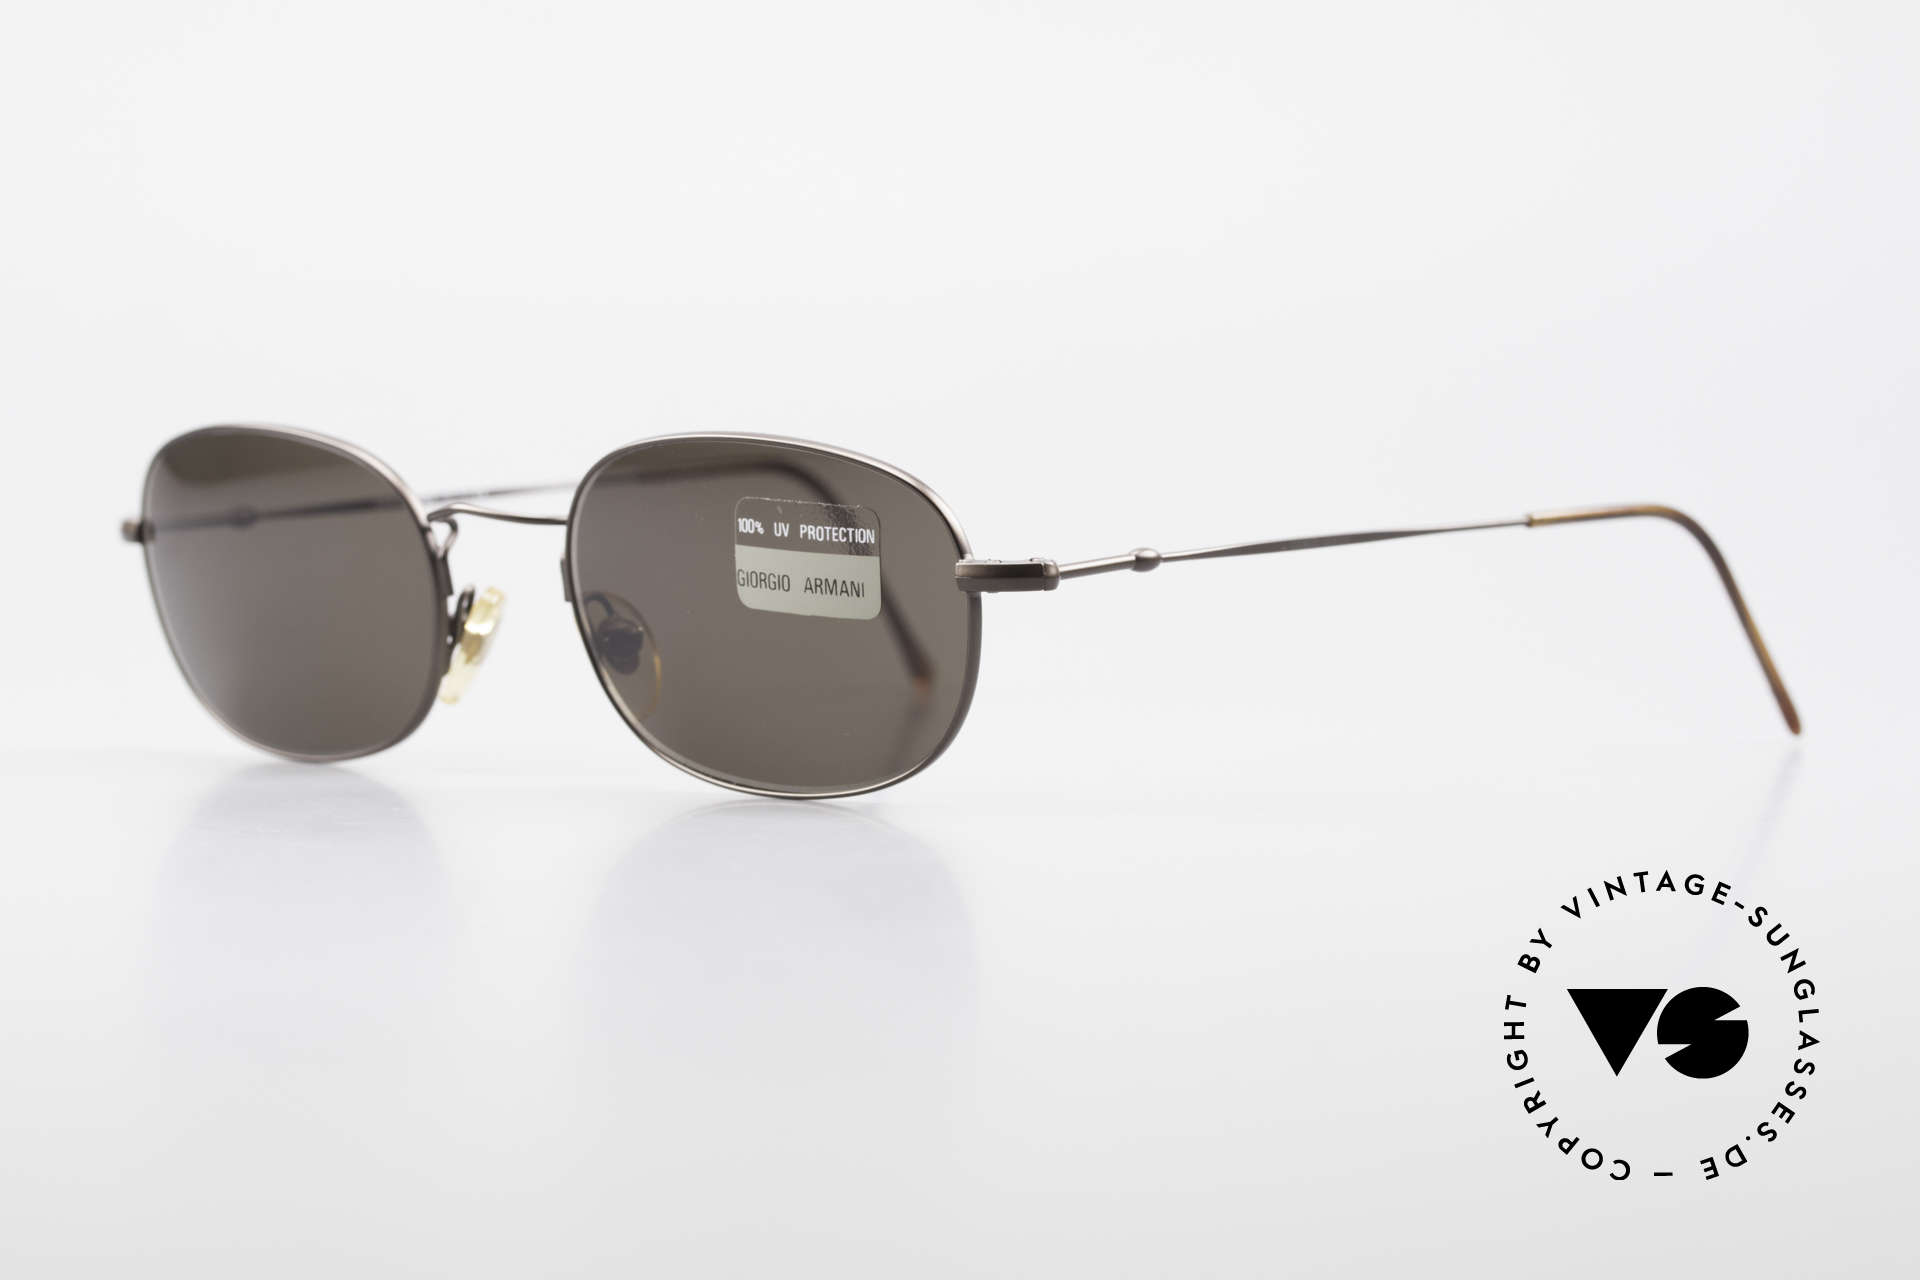 Giorgio Armani 234 Classic Designer Shades 80's, sober, timeless style: suitable for many occasions, Made for Men and Women